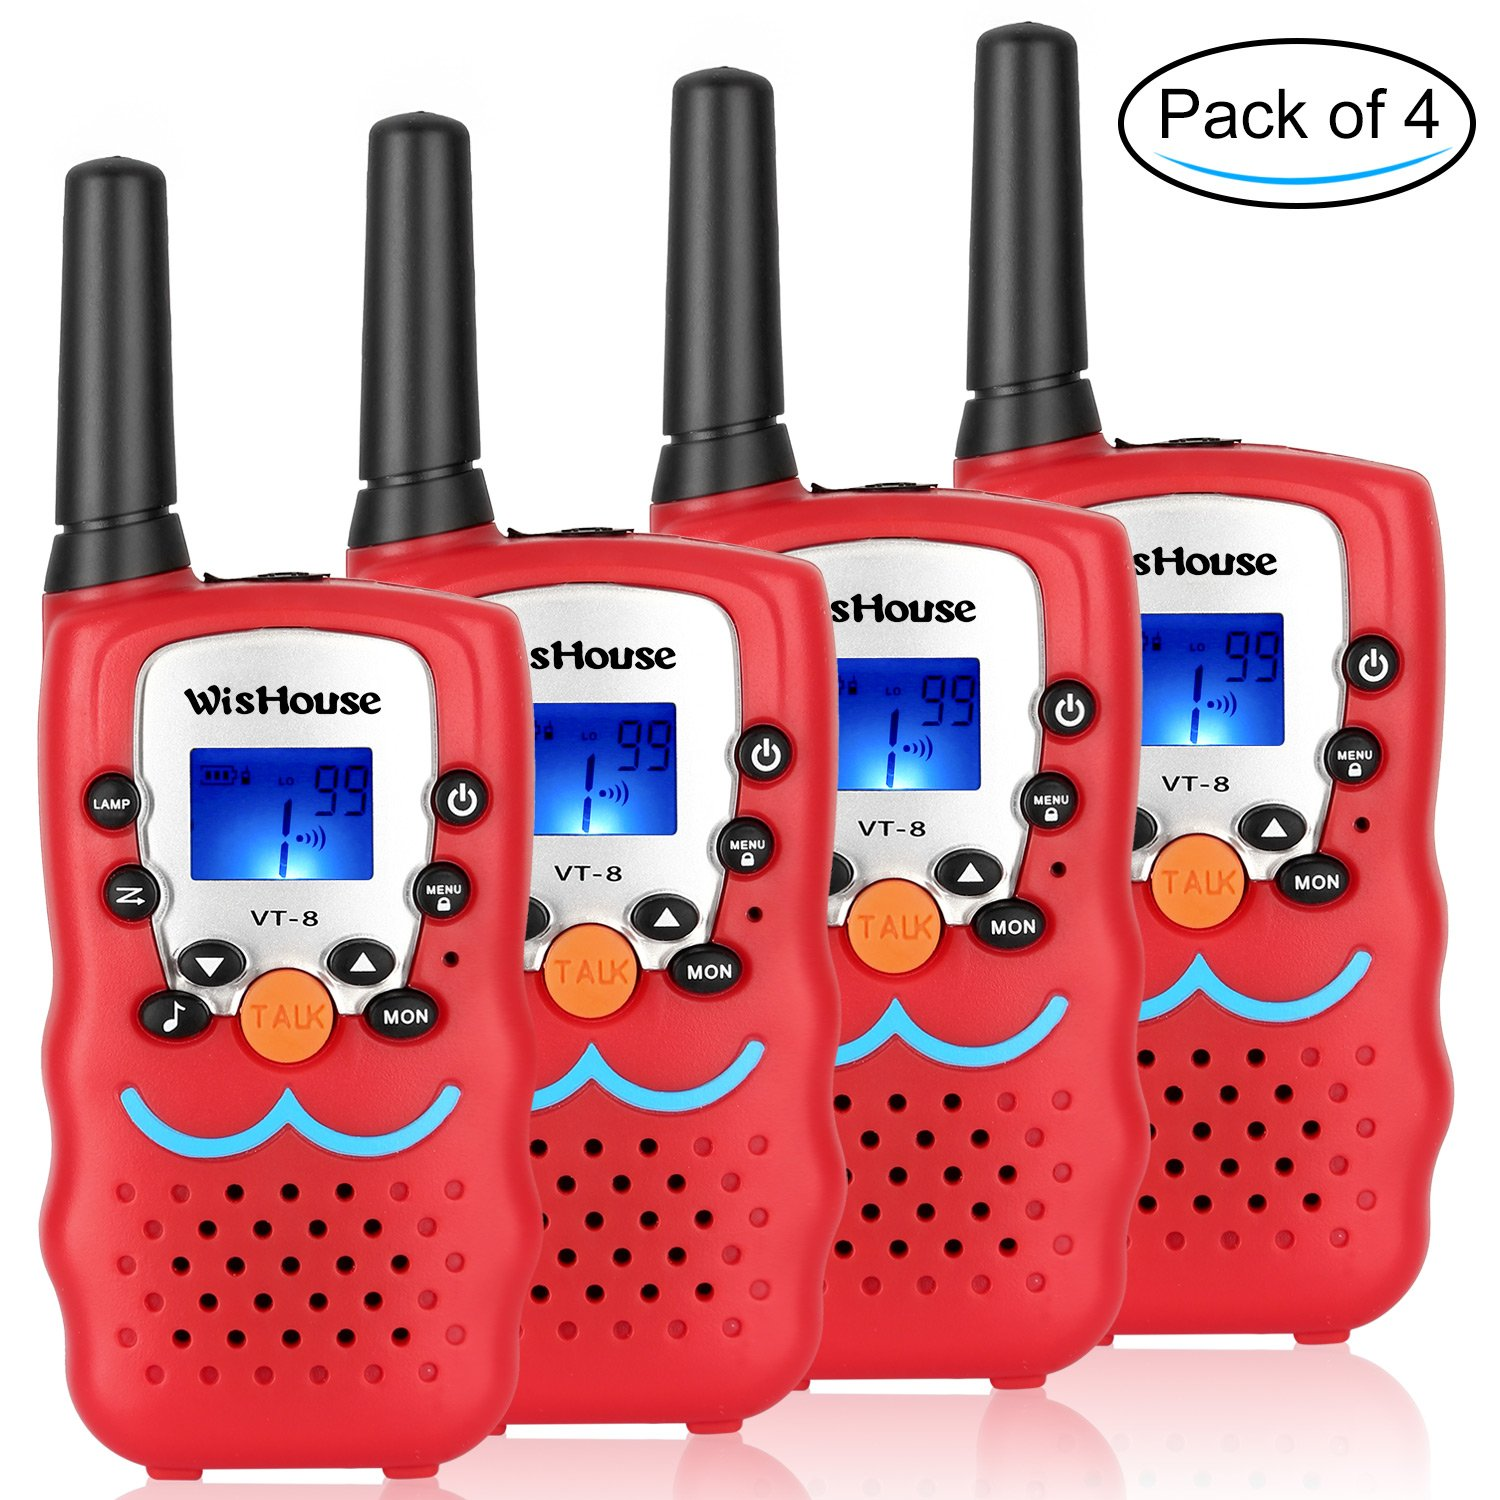 Wishouse Cheap Kid's Walkie Talkies, Mini Two way radios Festival Gift Toys for boys,Cool Toys Free Talk Walky Talky Long range For Spy Games Hiking Camping Outdoor Activities(VT-8 Red, 2 Pairs)